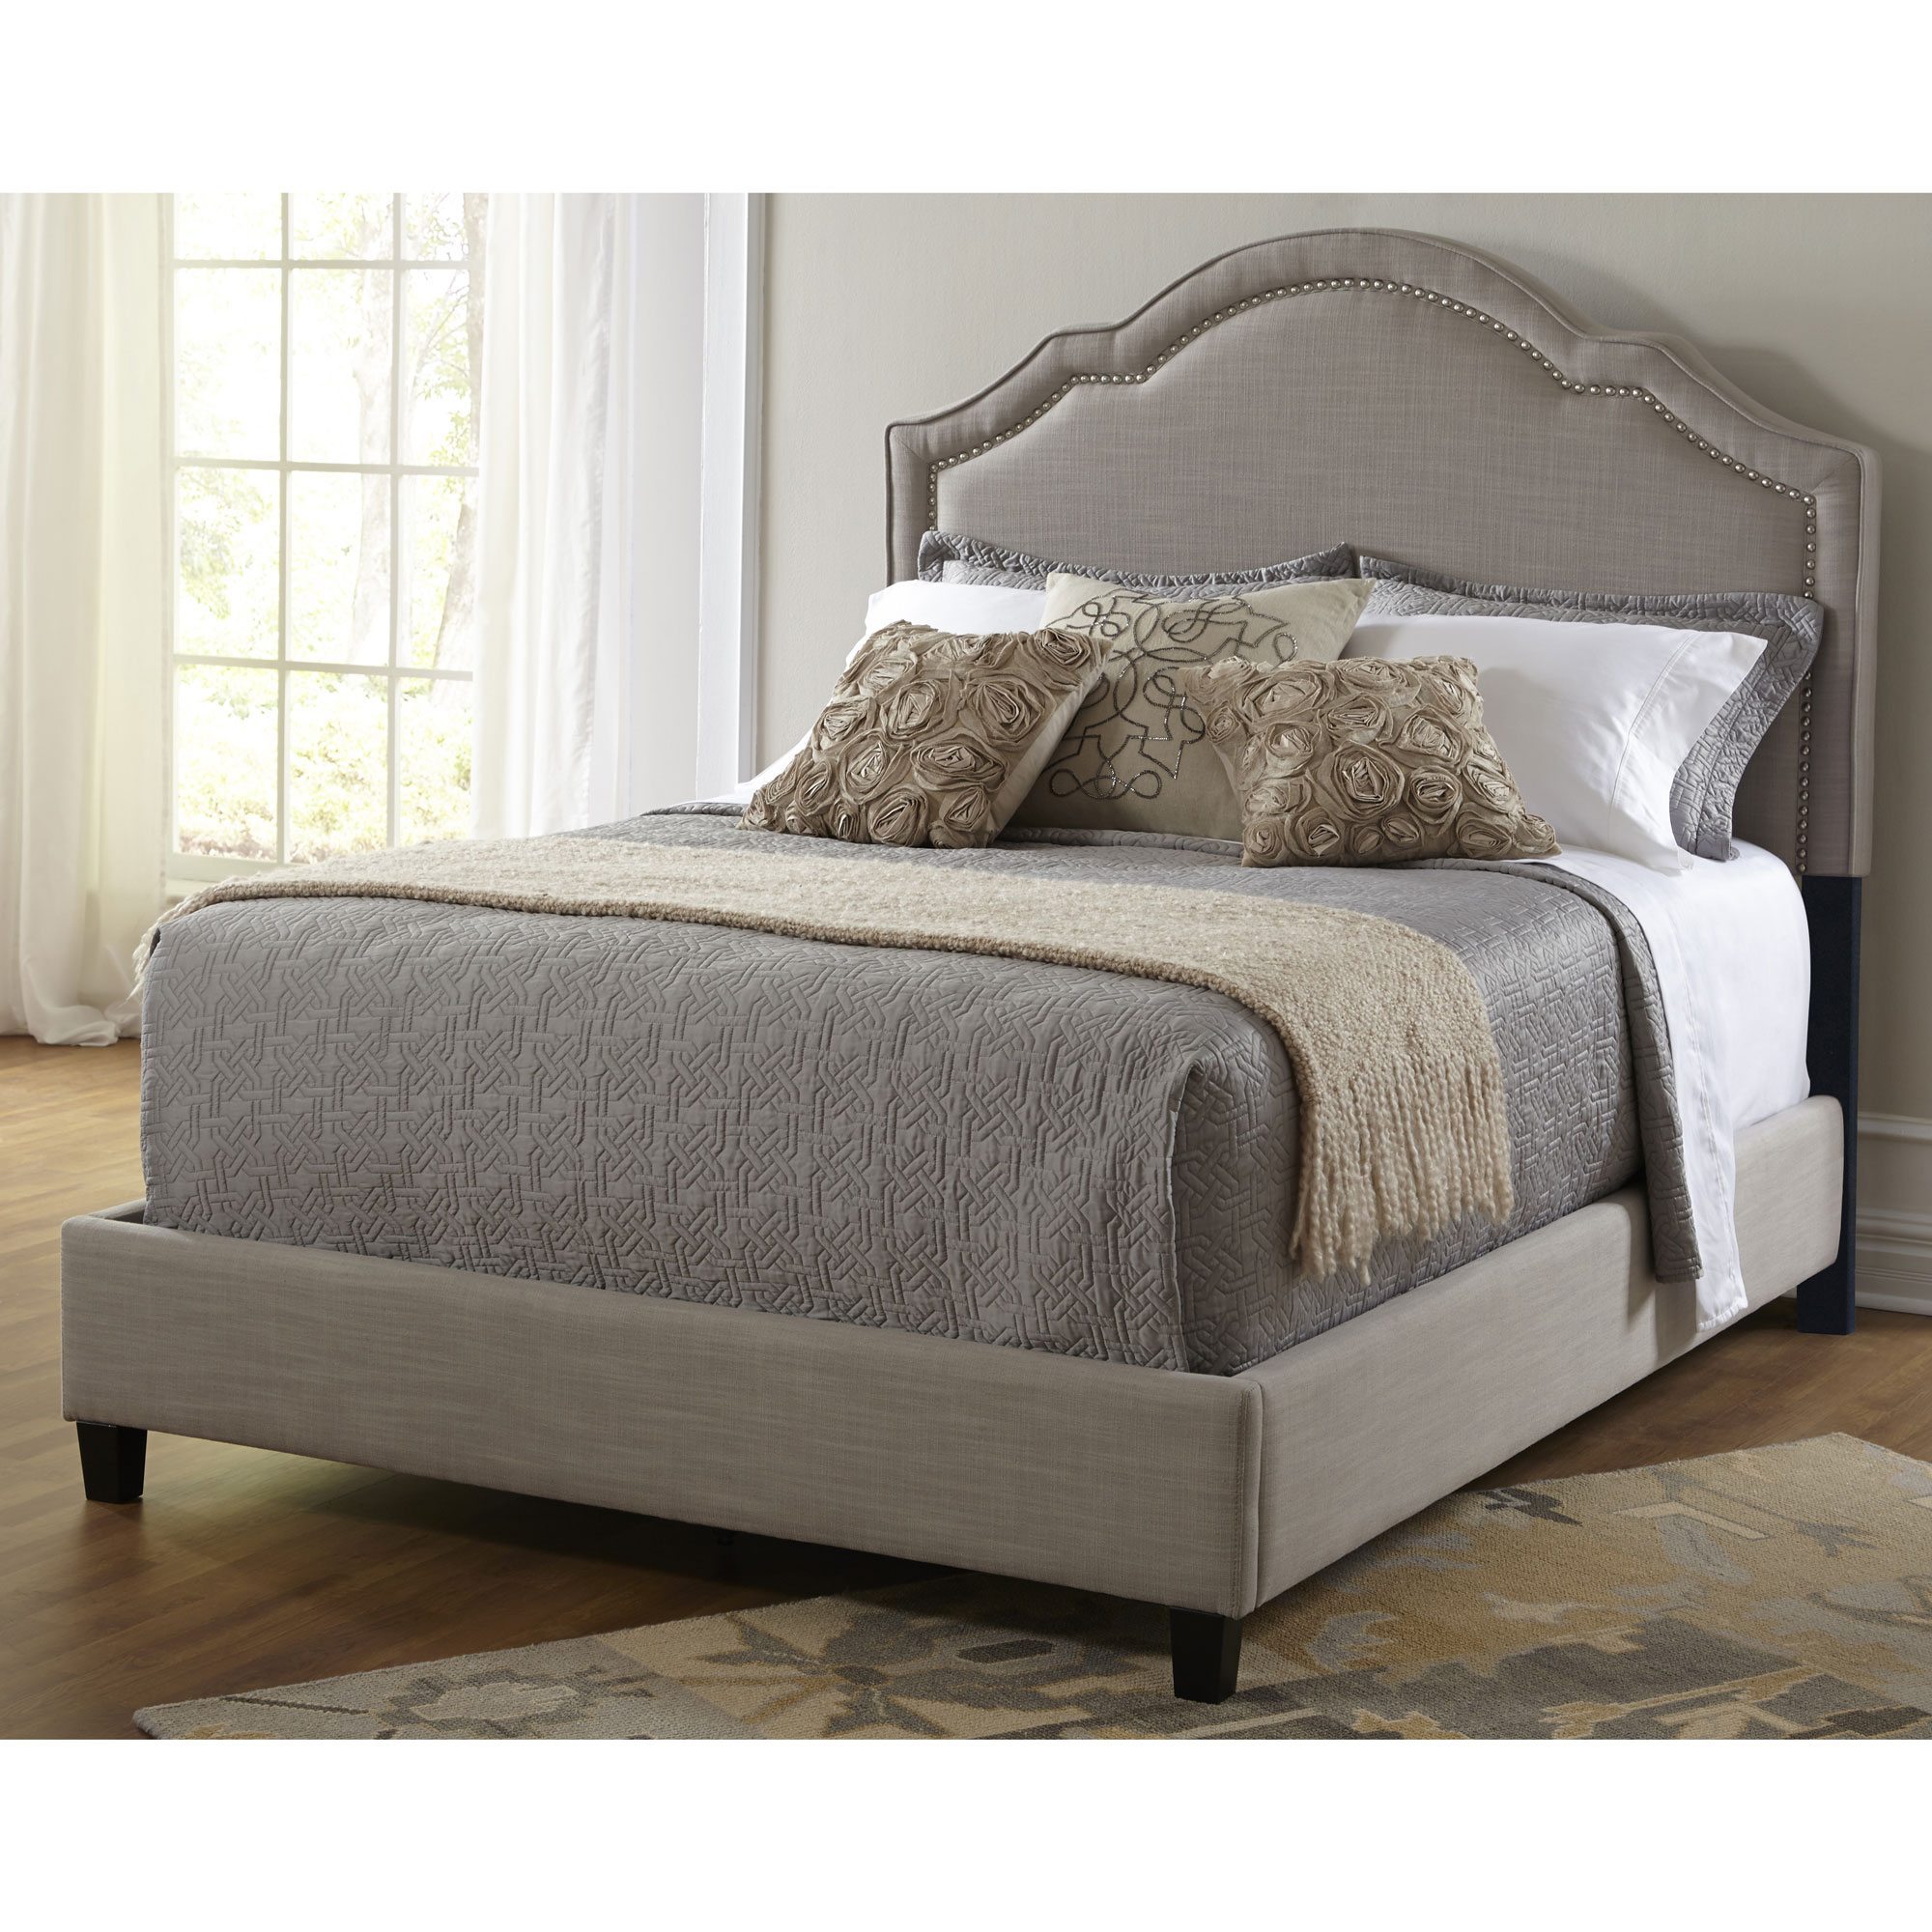 Pulaski accentrics home shaped nailhead upholstered headboard for king size bed ebay Home furniture queen size bed